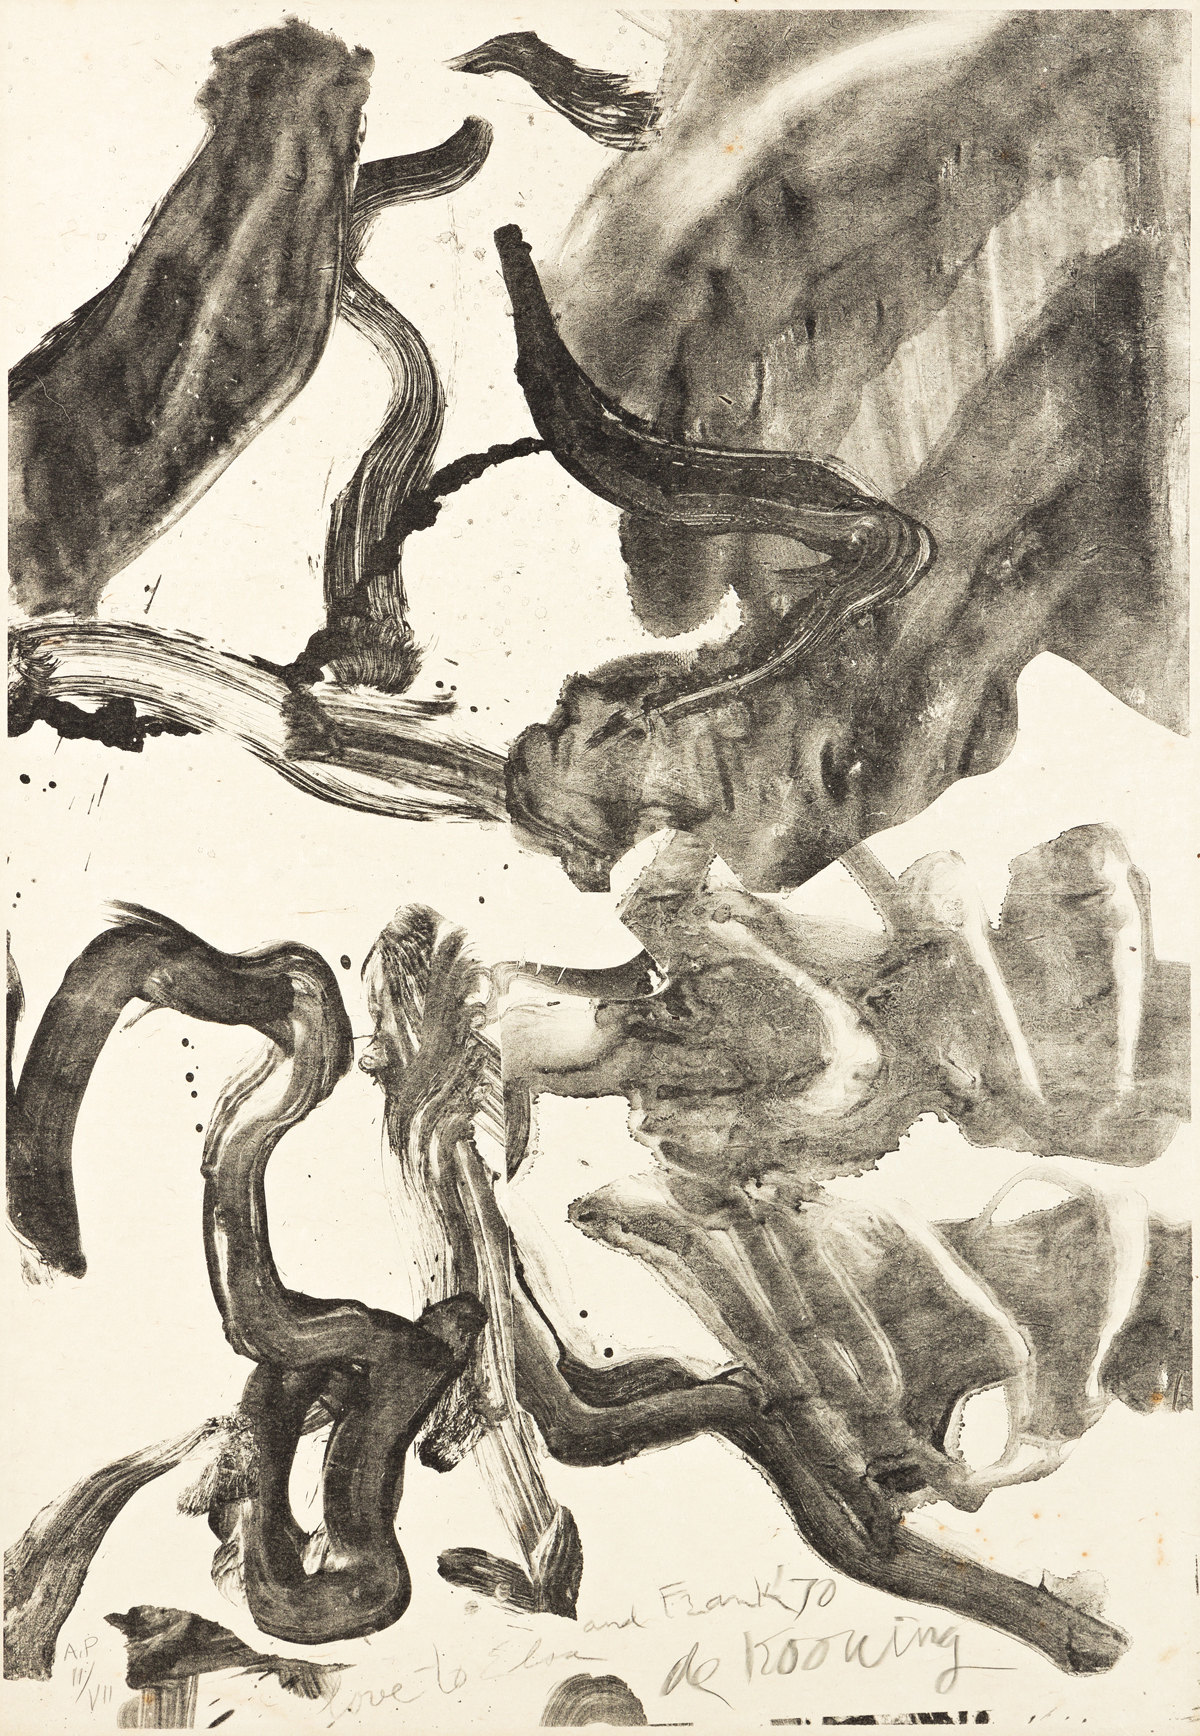 WILLEM DE KOONING Reflections: To Kermit for Our Trip to Japan.